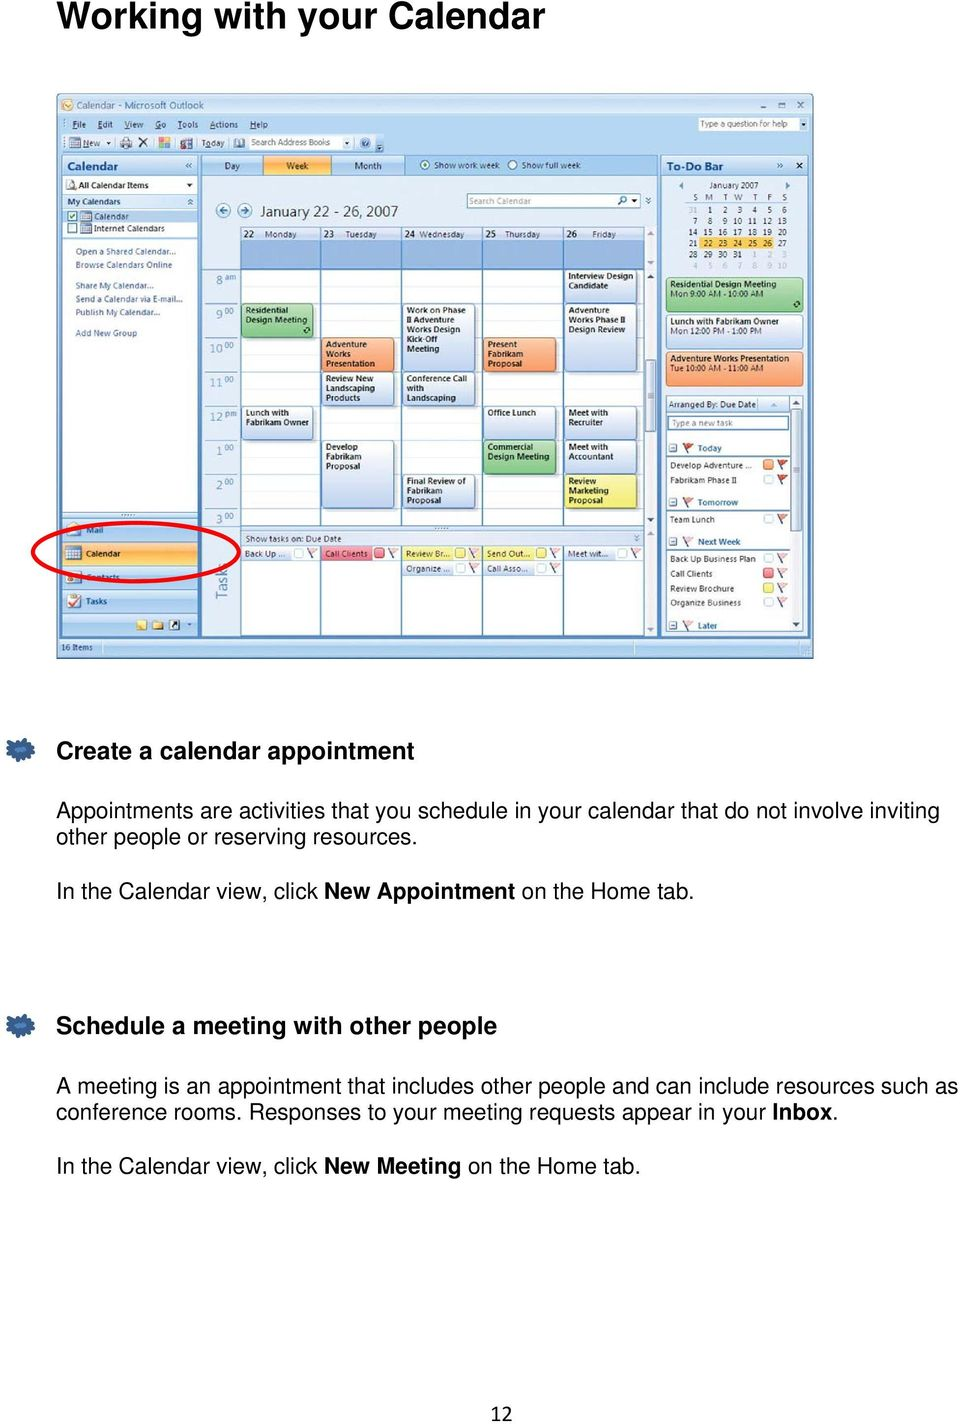 Schedule a meeting with other people A meeting is an appointment that includes other people and can include resources such as